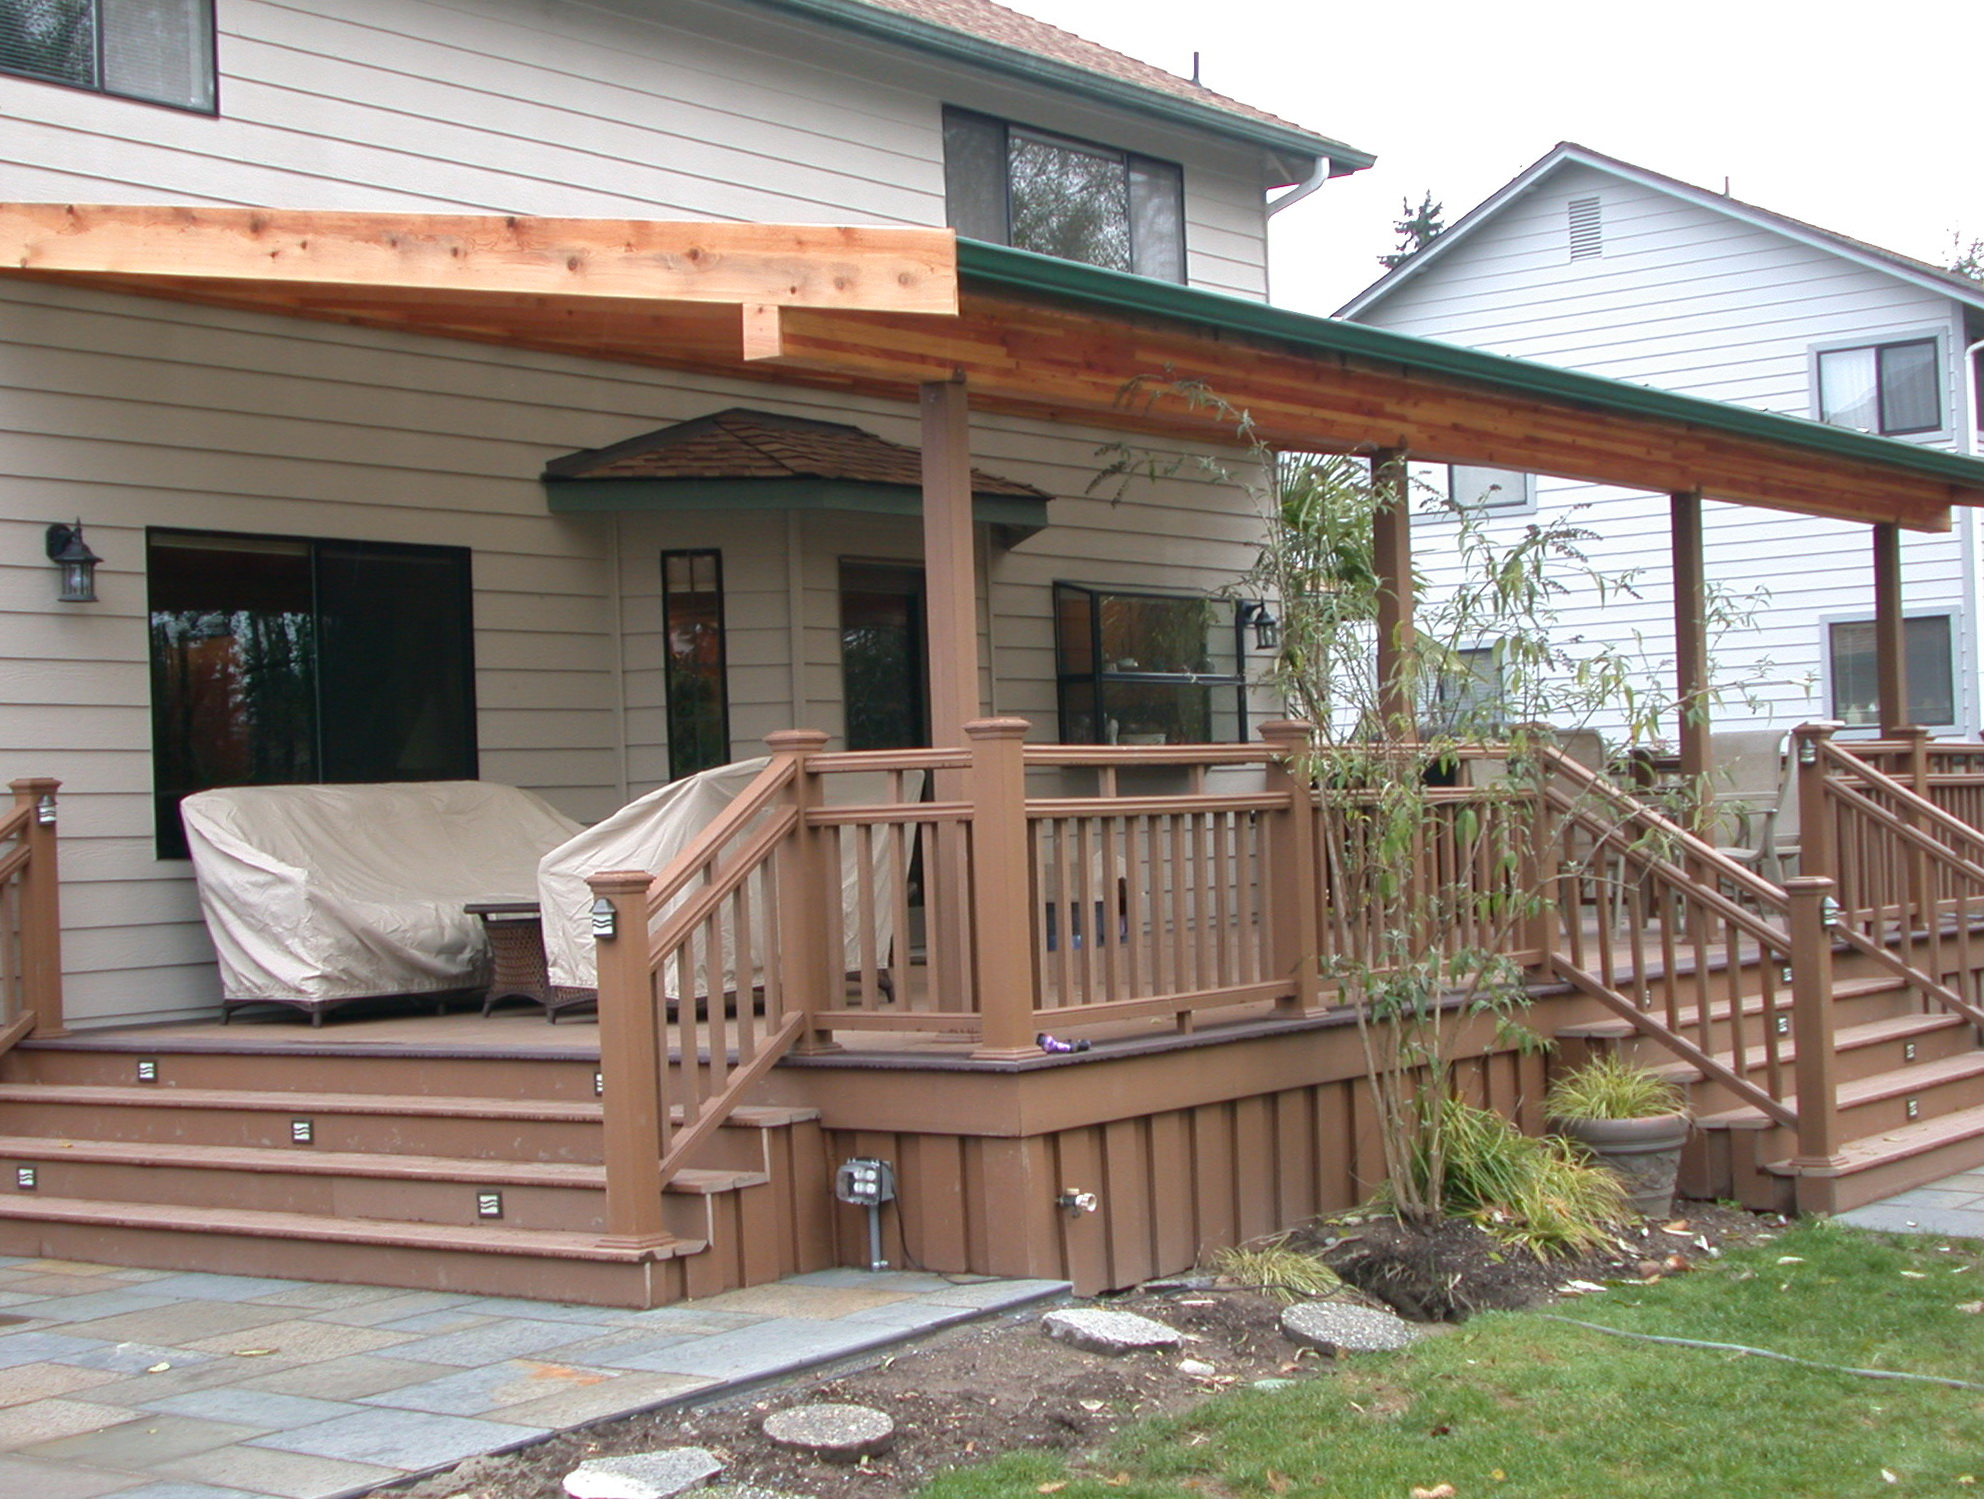 How to build a covered front porch cozy home design for How to build a back porch deck